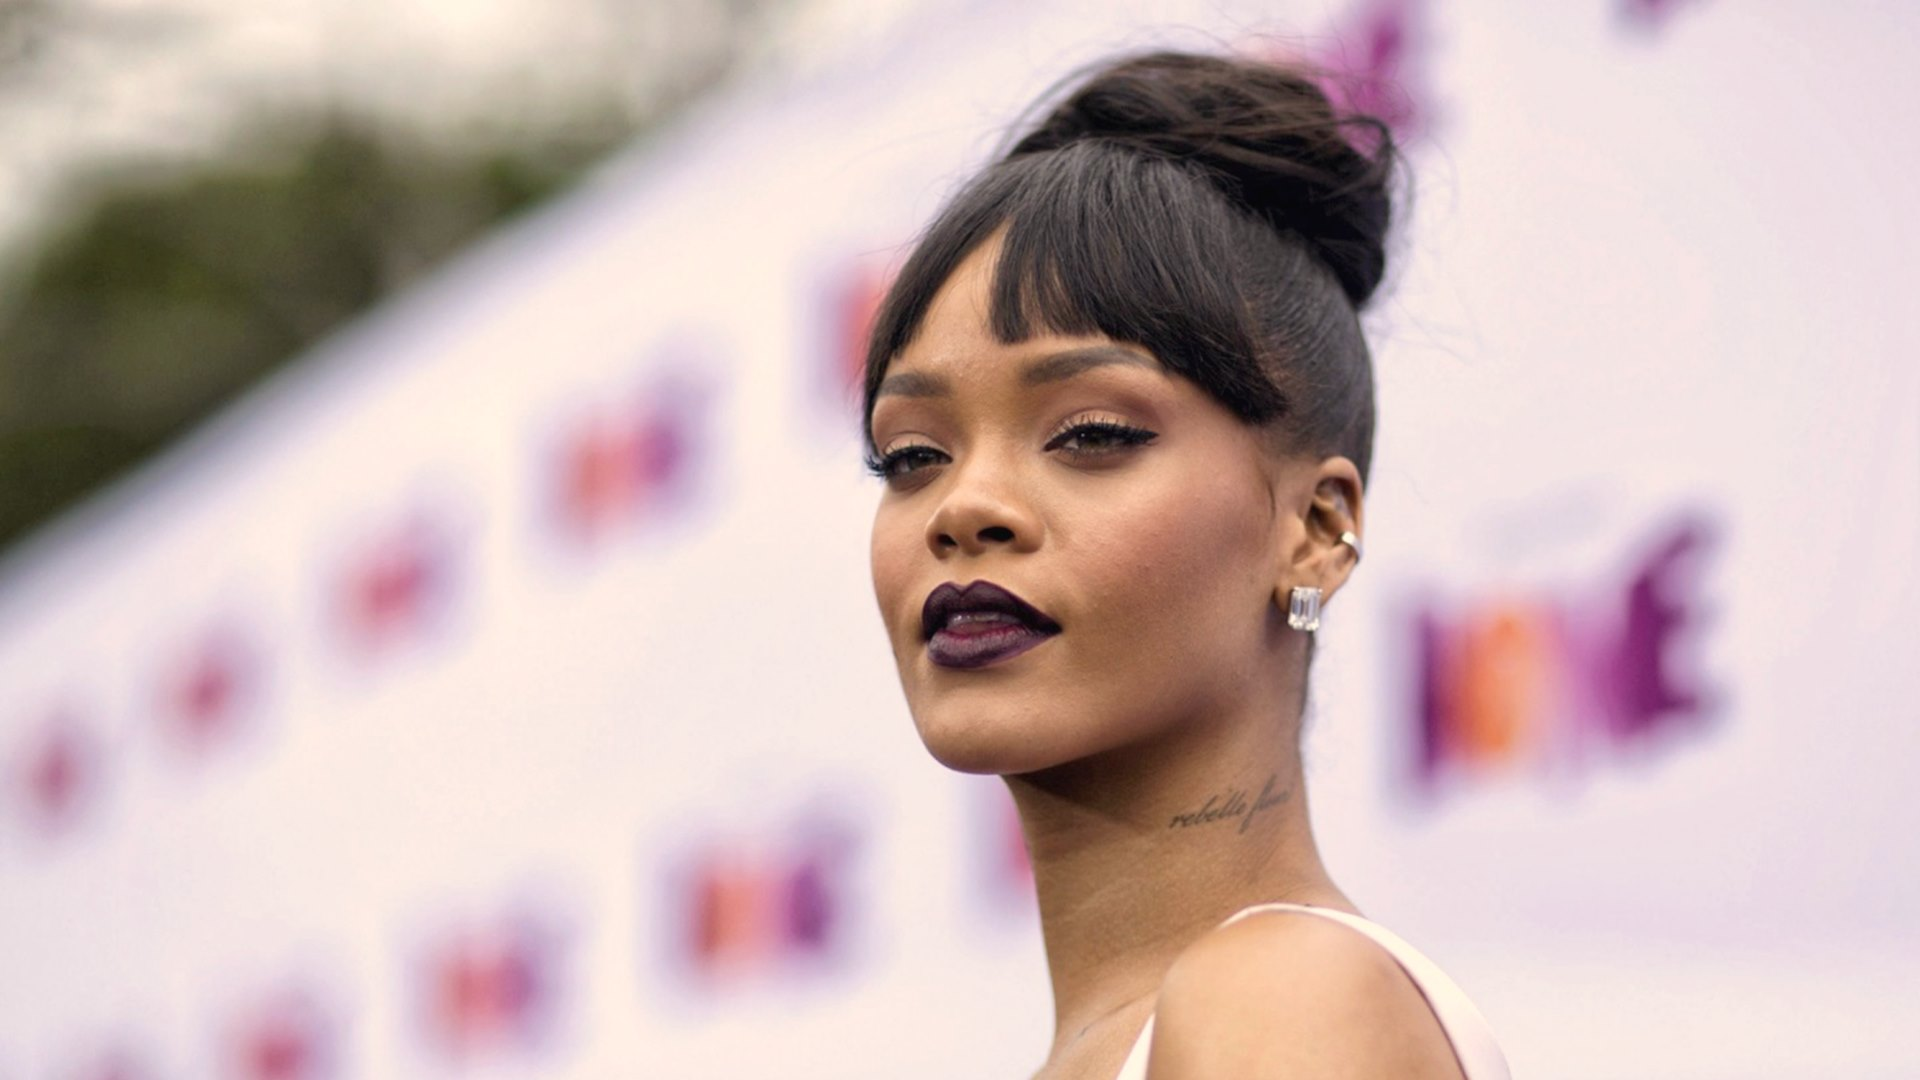 american singer rihanna latest hd image download